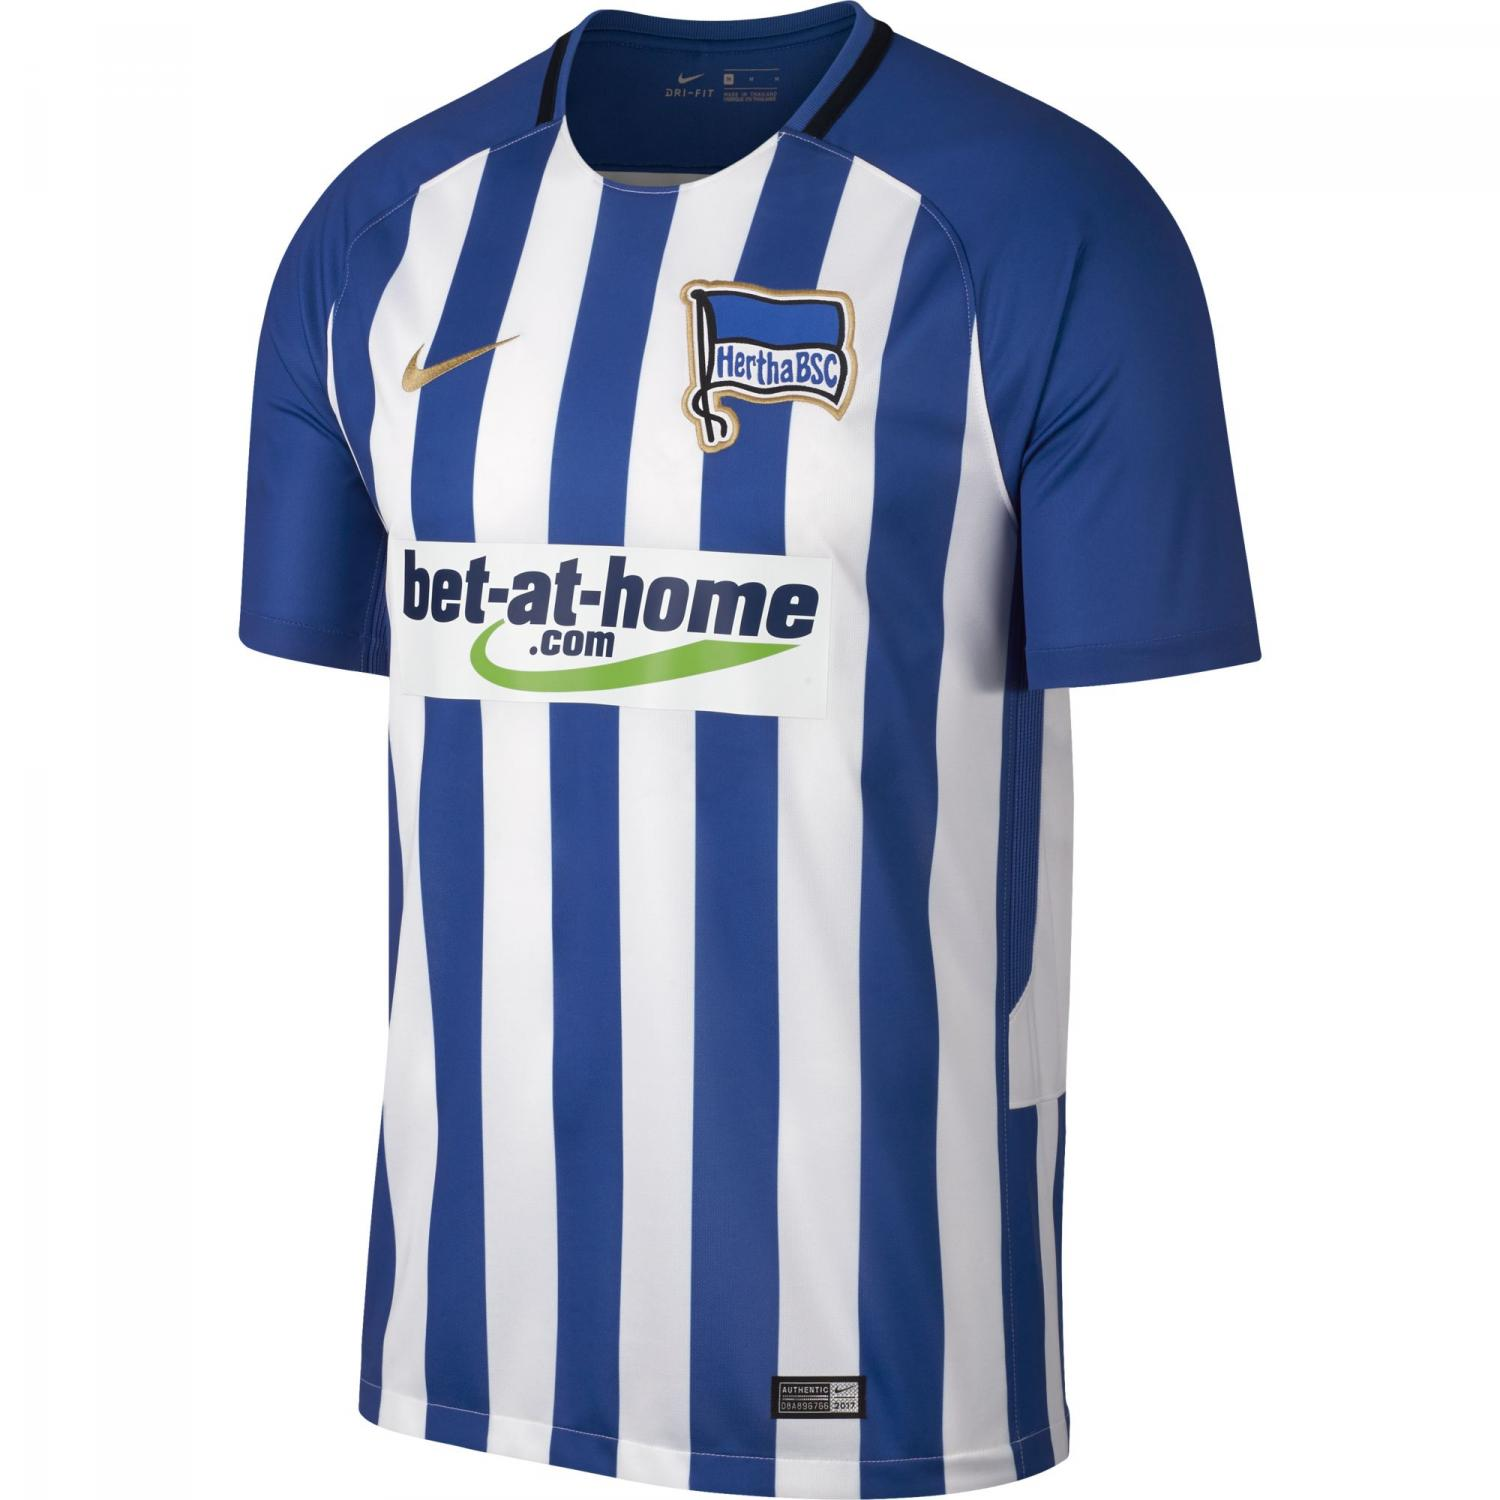 Nike Jersey Home Hertha Berlin   17/18